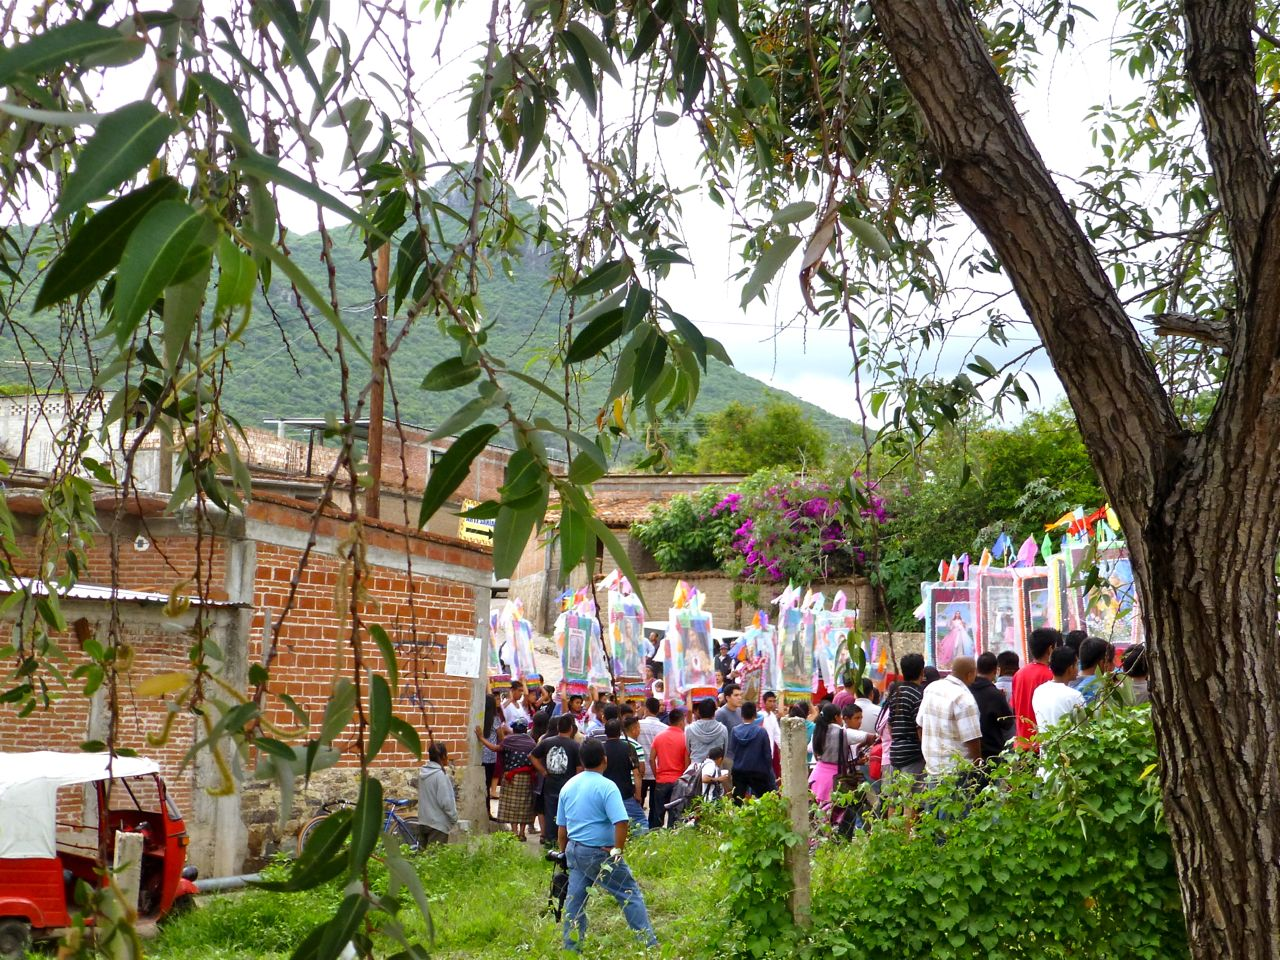 Procession in mid-ground and mountain in background